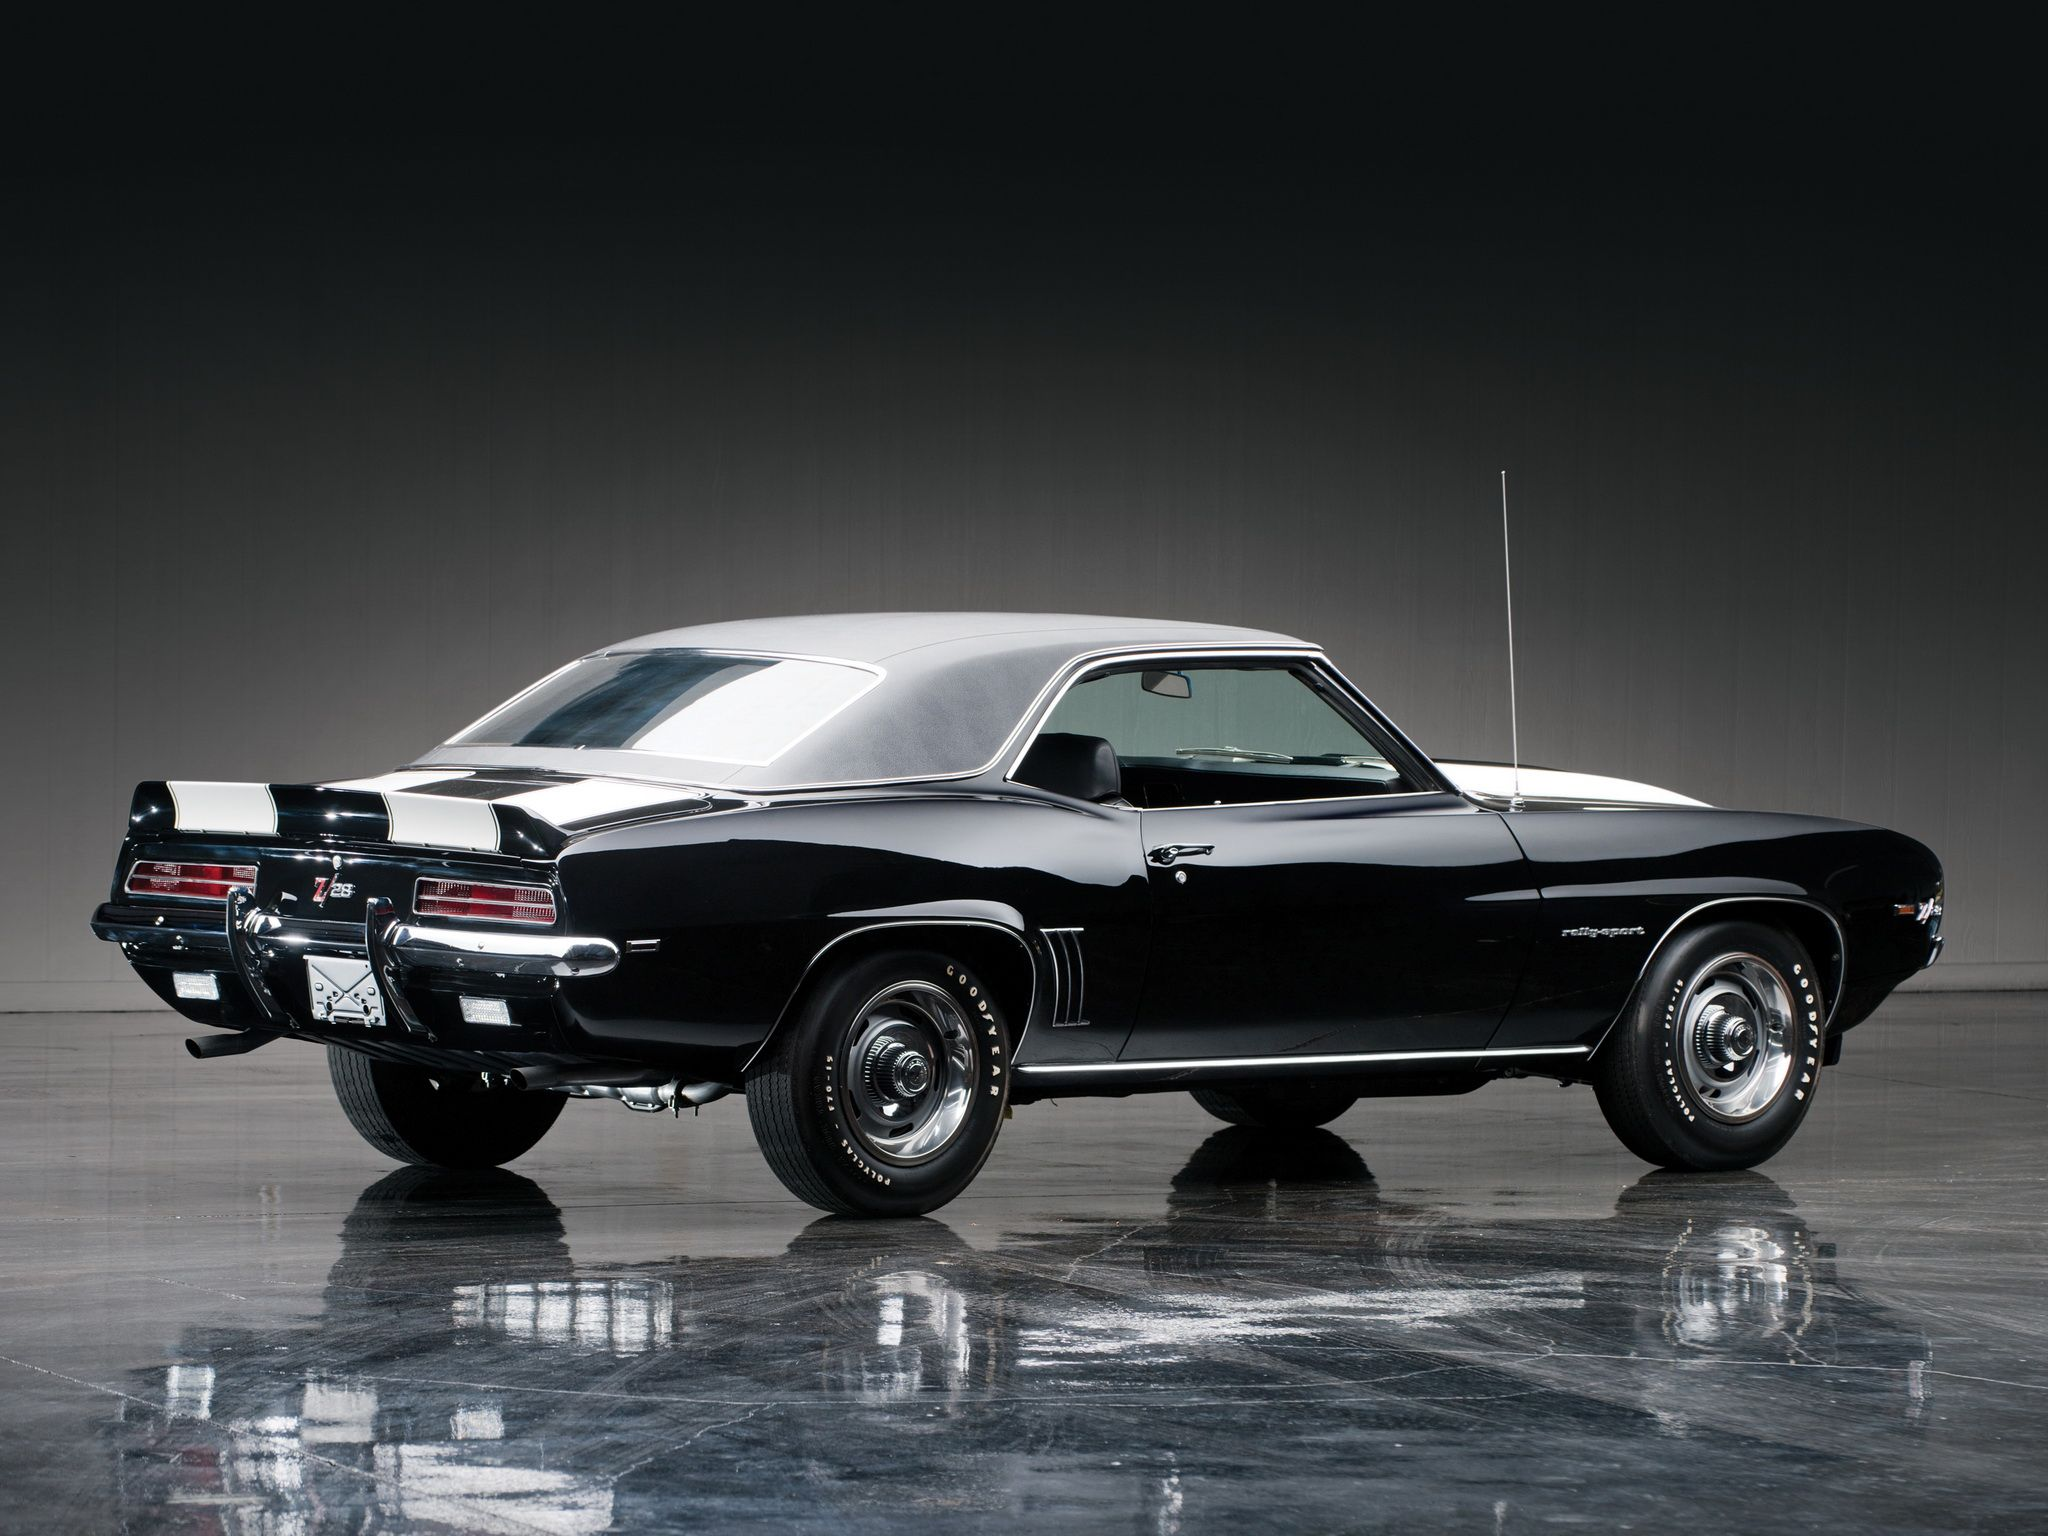 Classic Chevy Muscle Car Wallpapers - Top Free Classic ...